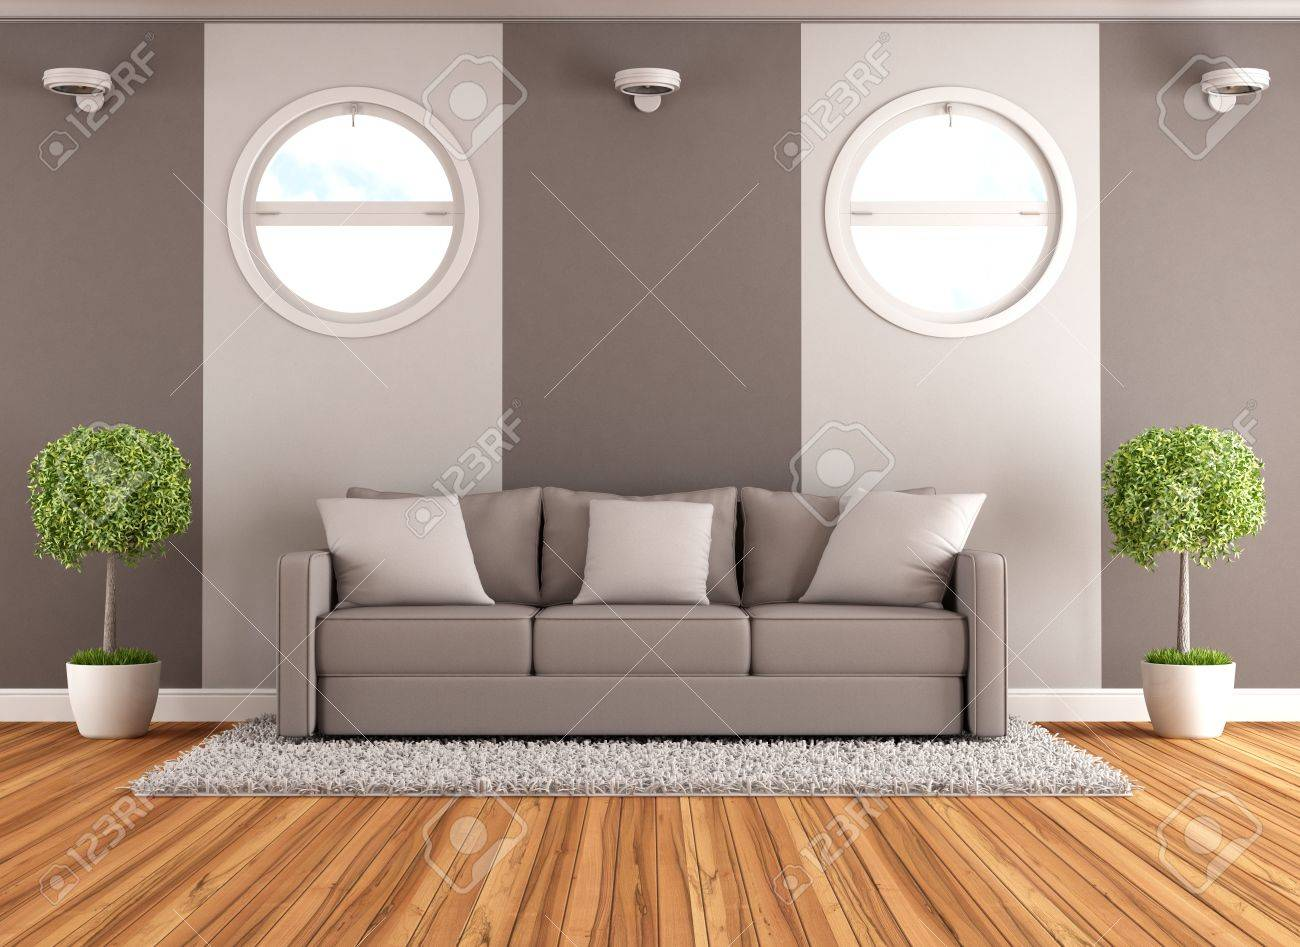 Contemporary living room with brown couch and round windows - rendering Stock Photo - 21538746